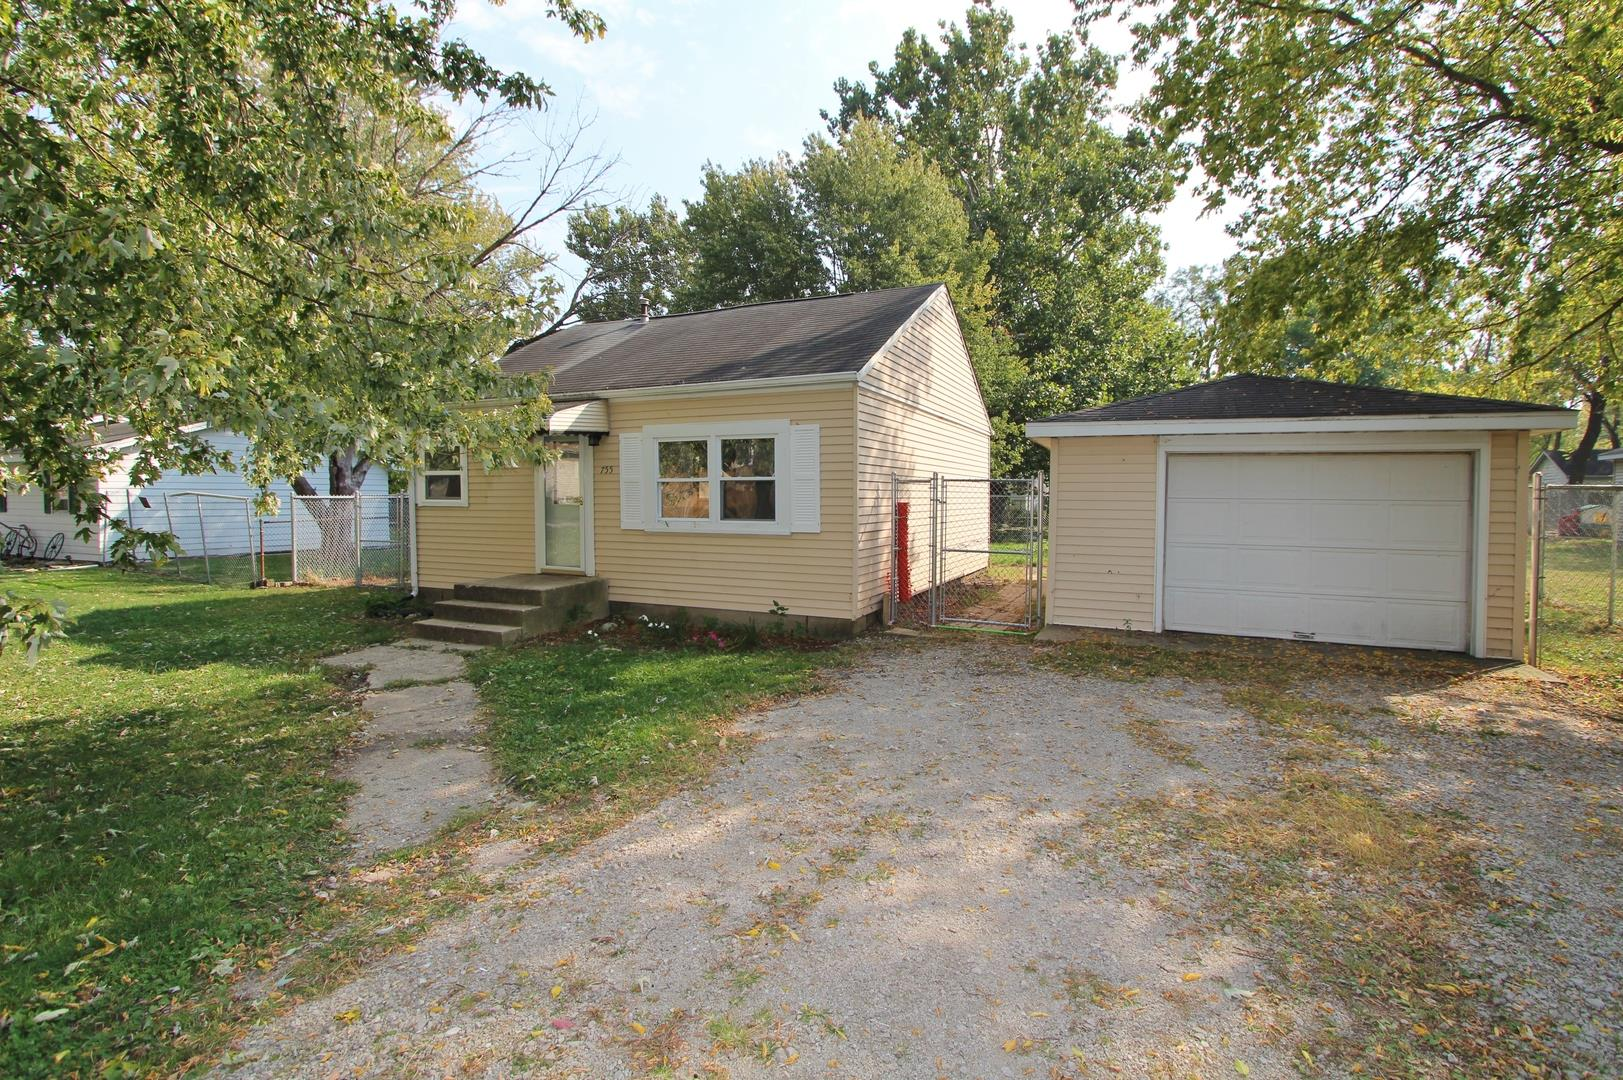 755 E 3rd Street, Coal City, IL 60416 - #: 10902008